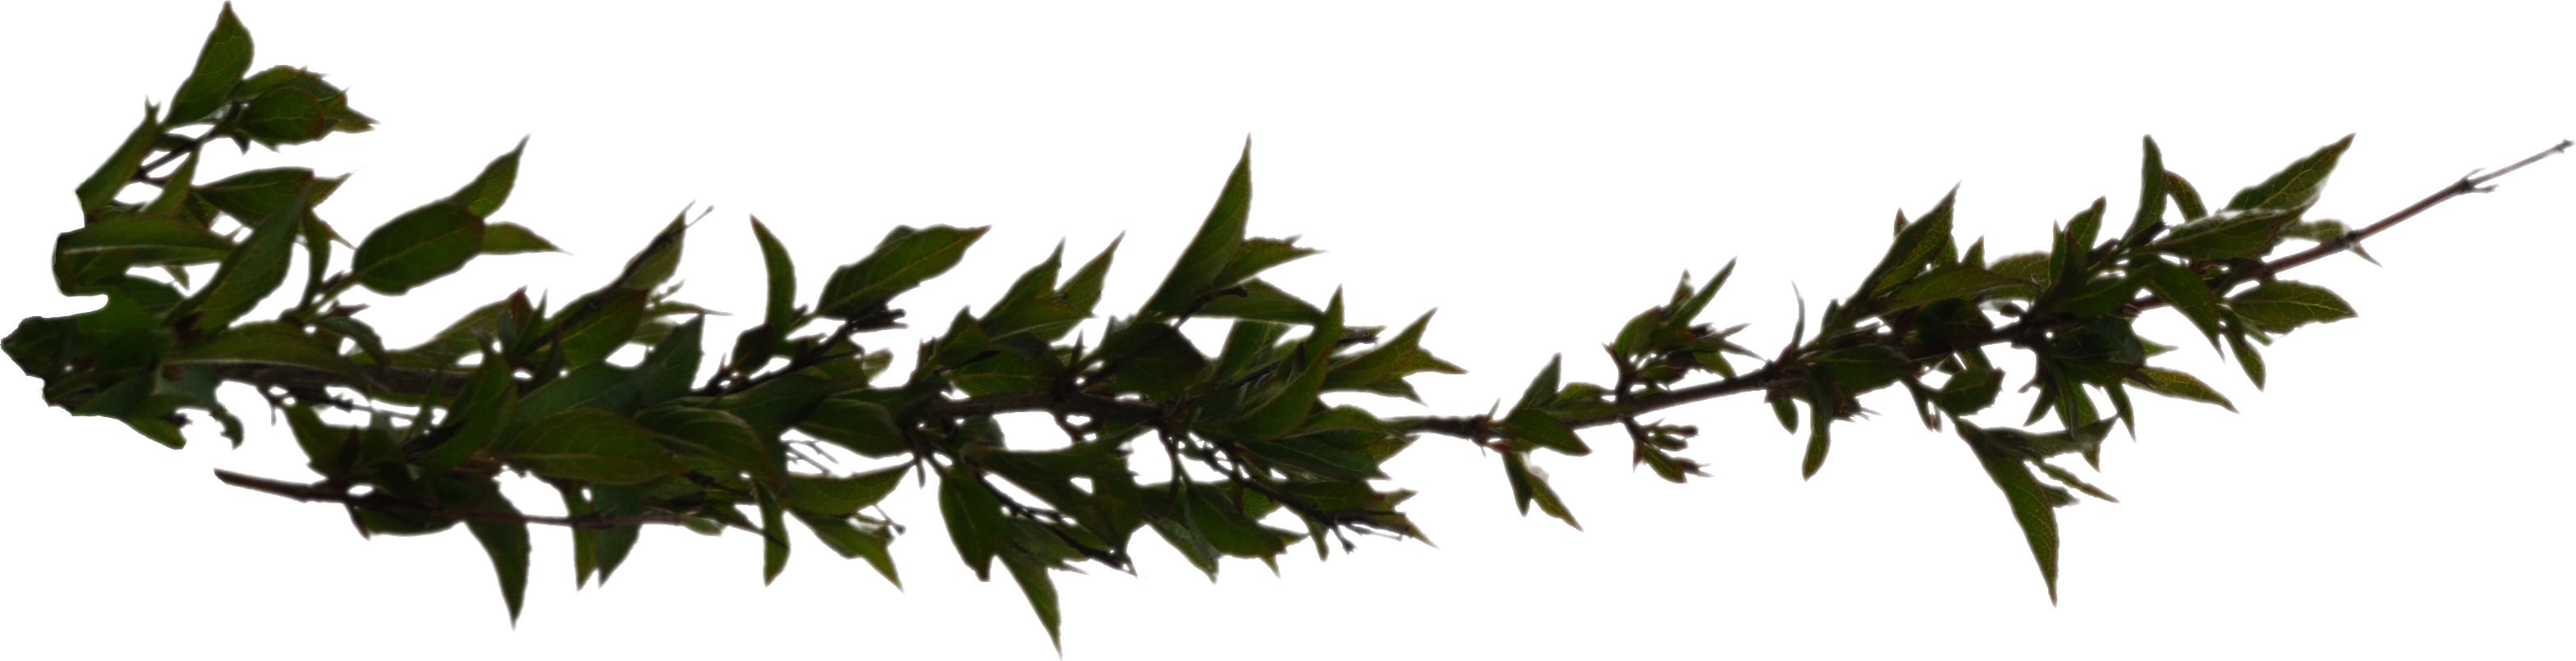 Plant branch png. Leafy tree branchleaves liberated